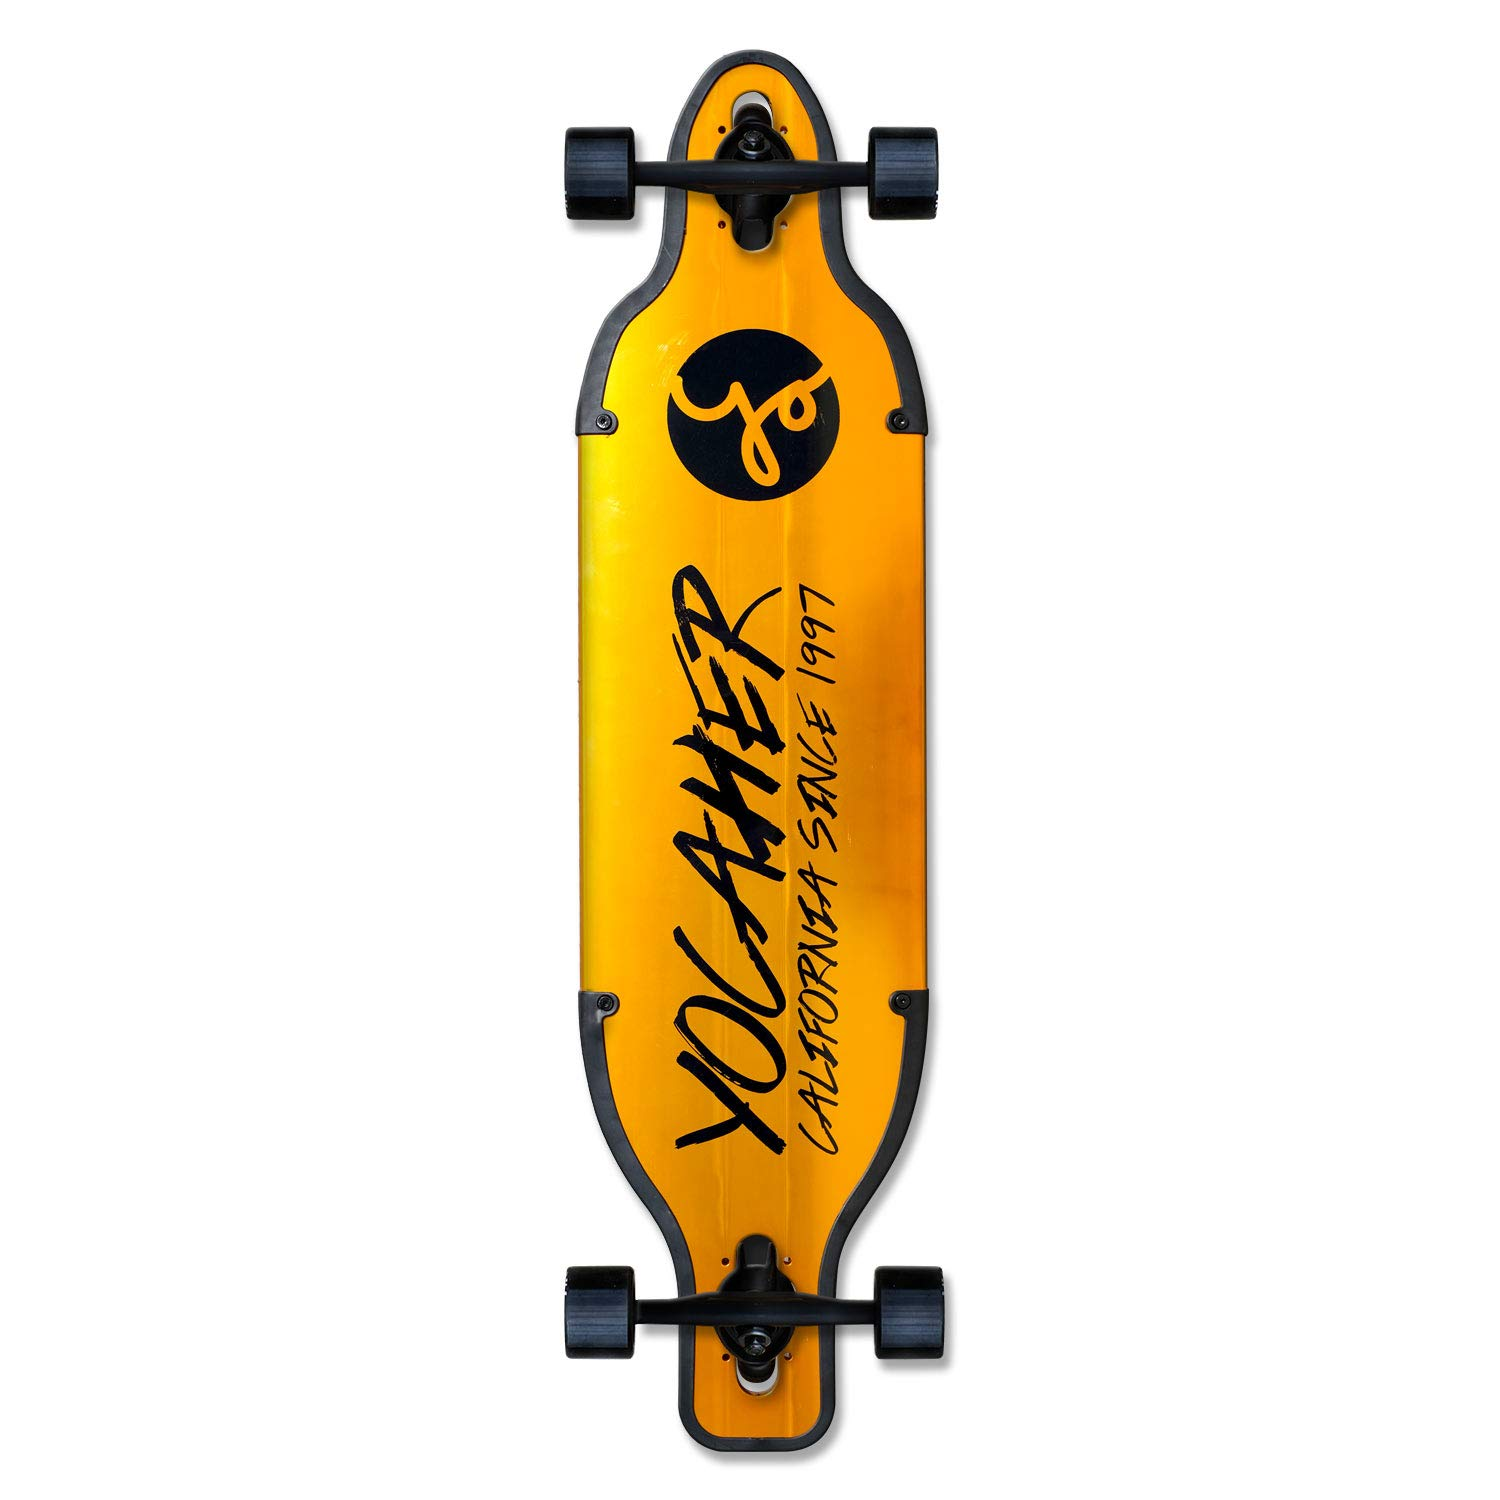 Yocaher Aluminum Drop Through Complete Longboard - Gold and Black - 36 inch Boards (Gold)